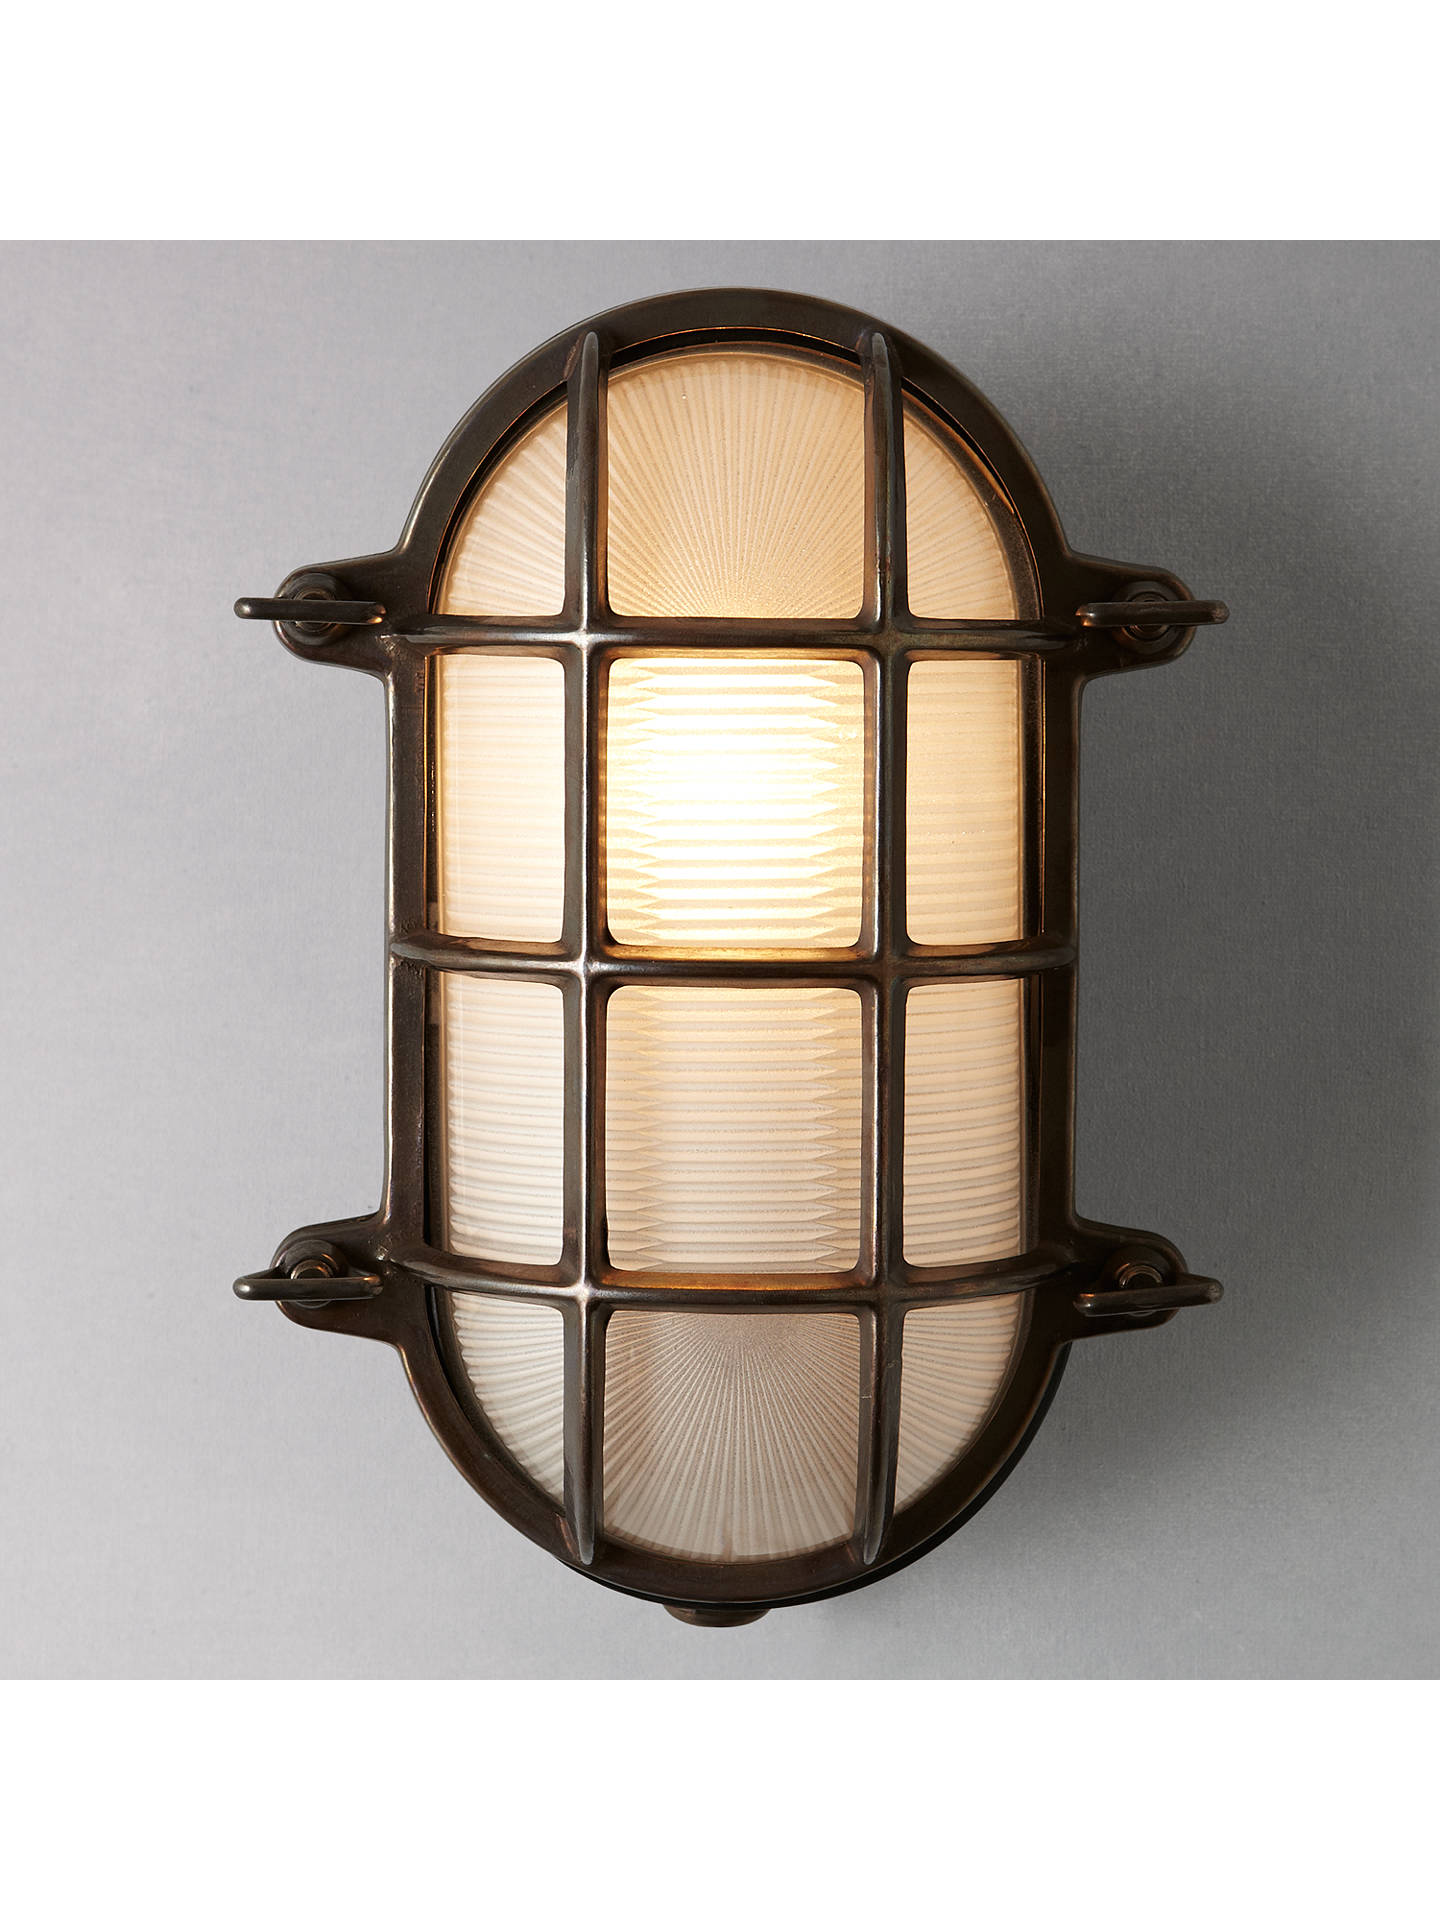 BuyDavey Lighting Bulkhead Weathered Wall Light, Brass Online at johnlewis.com